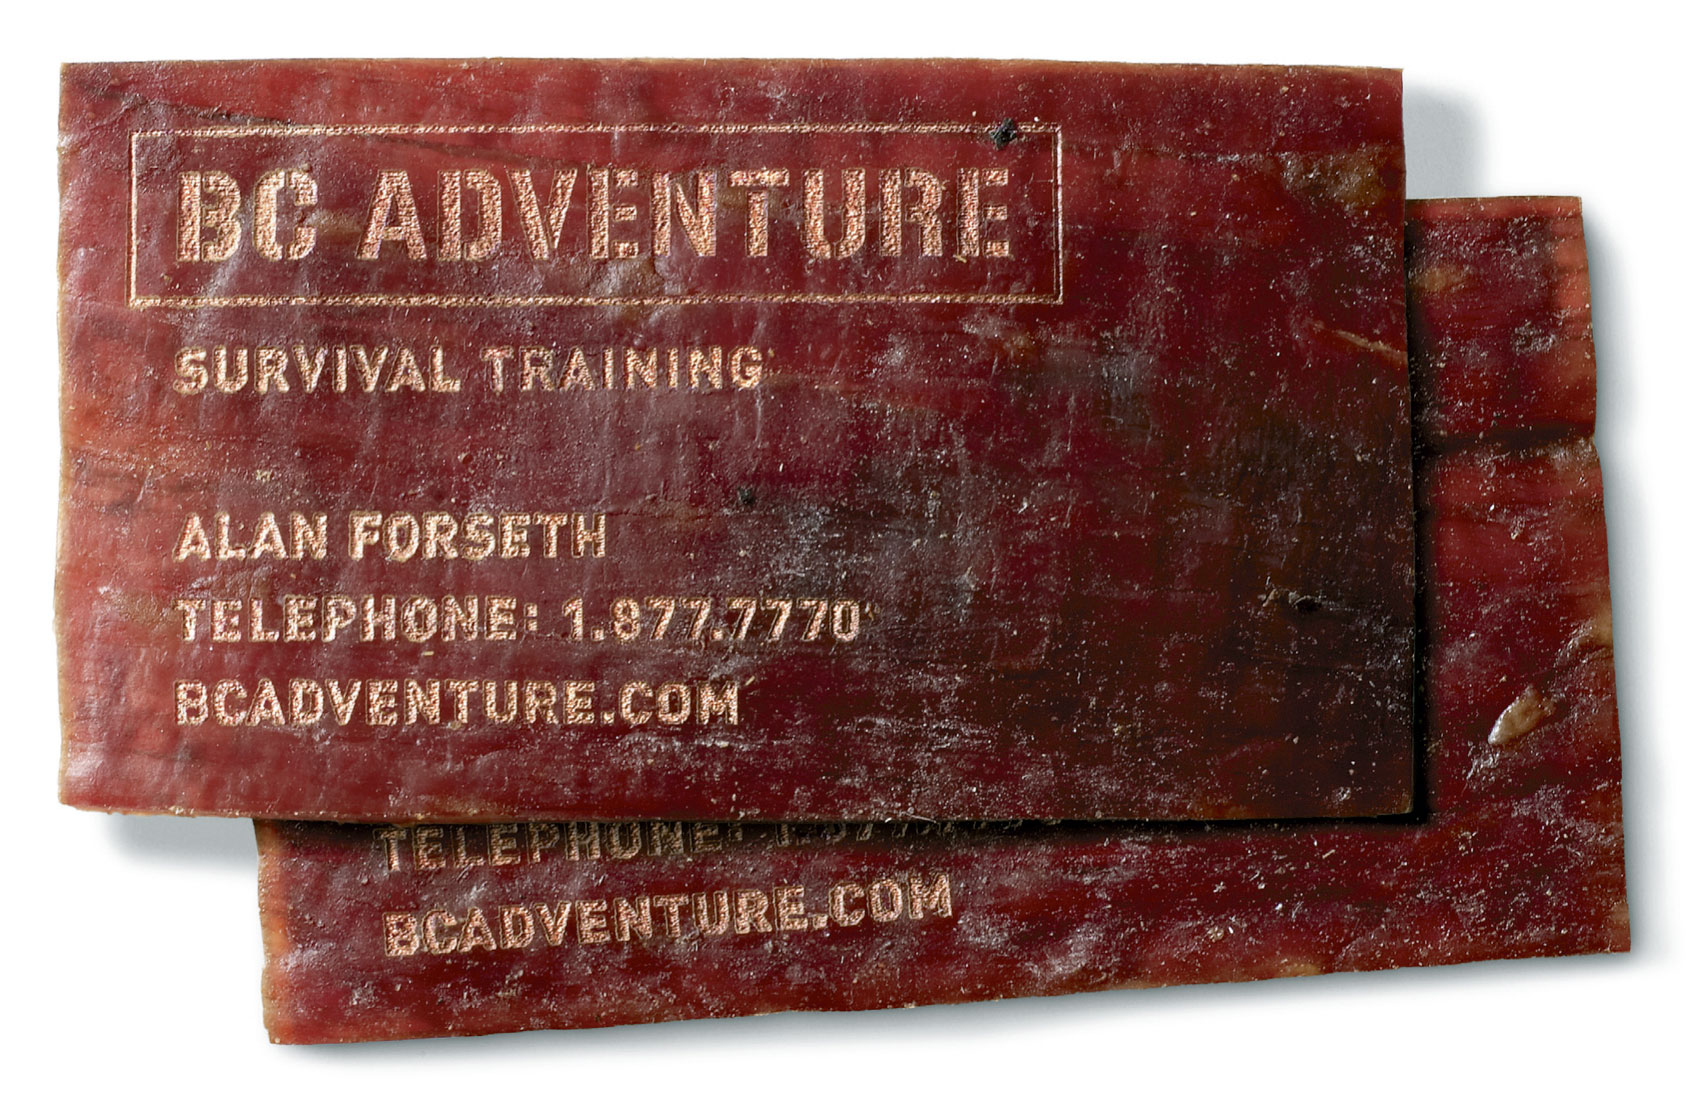 BC Adventure Business Card